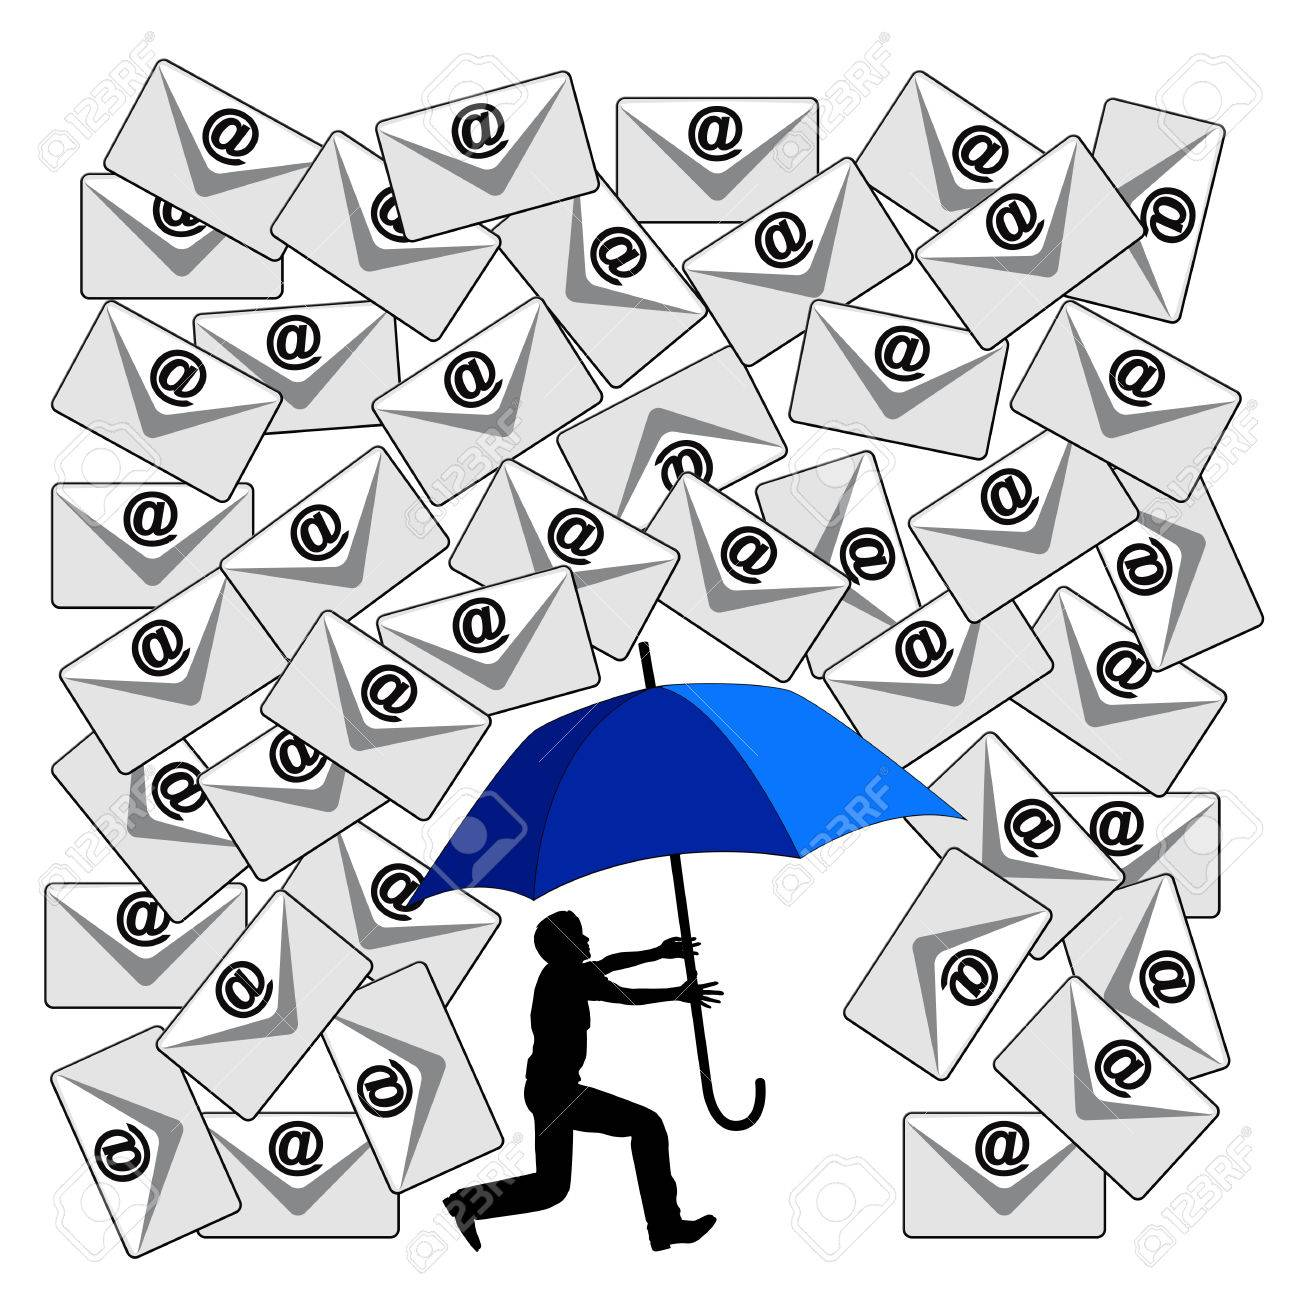 Fighting the Email Flood. Humorous concept sign of the daily flood of e-mails at the workplace or in social media - 35283035